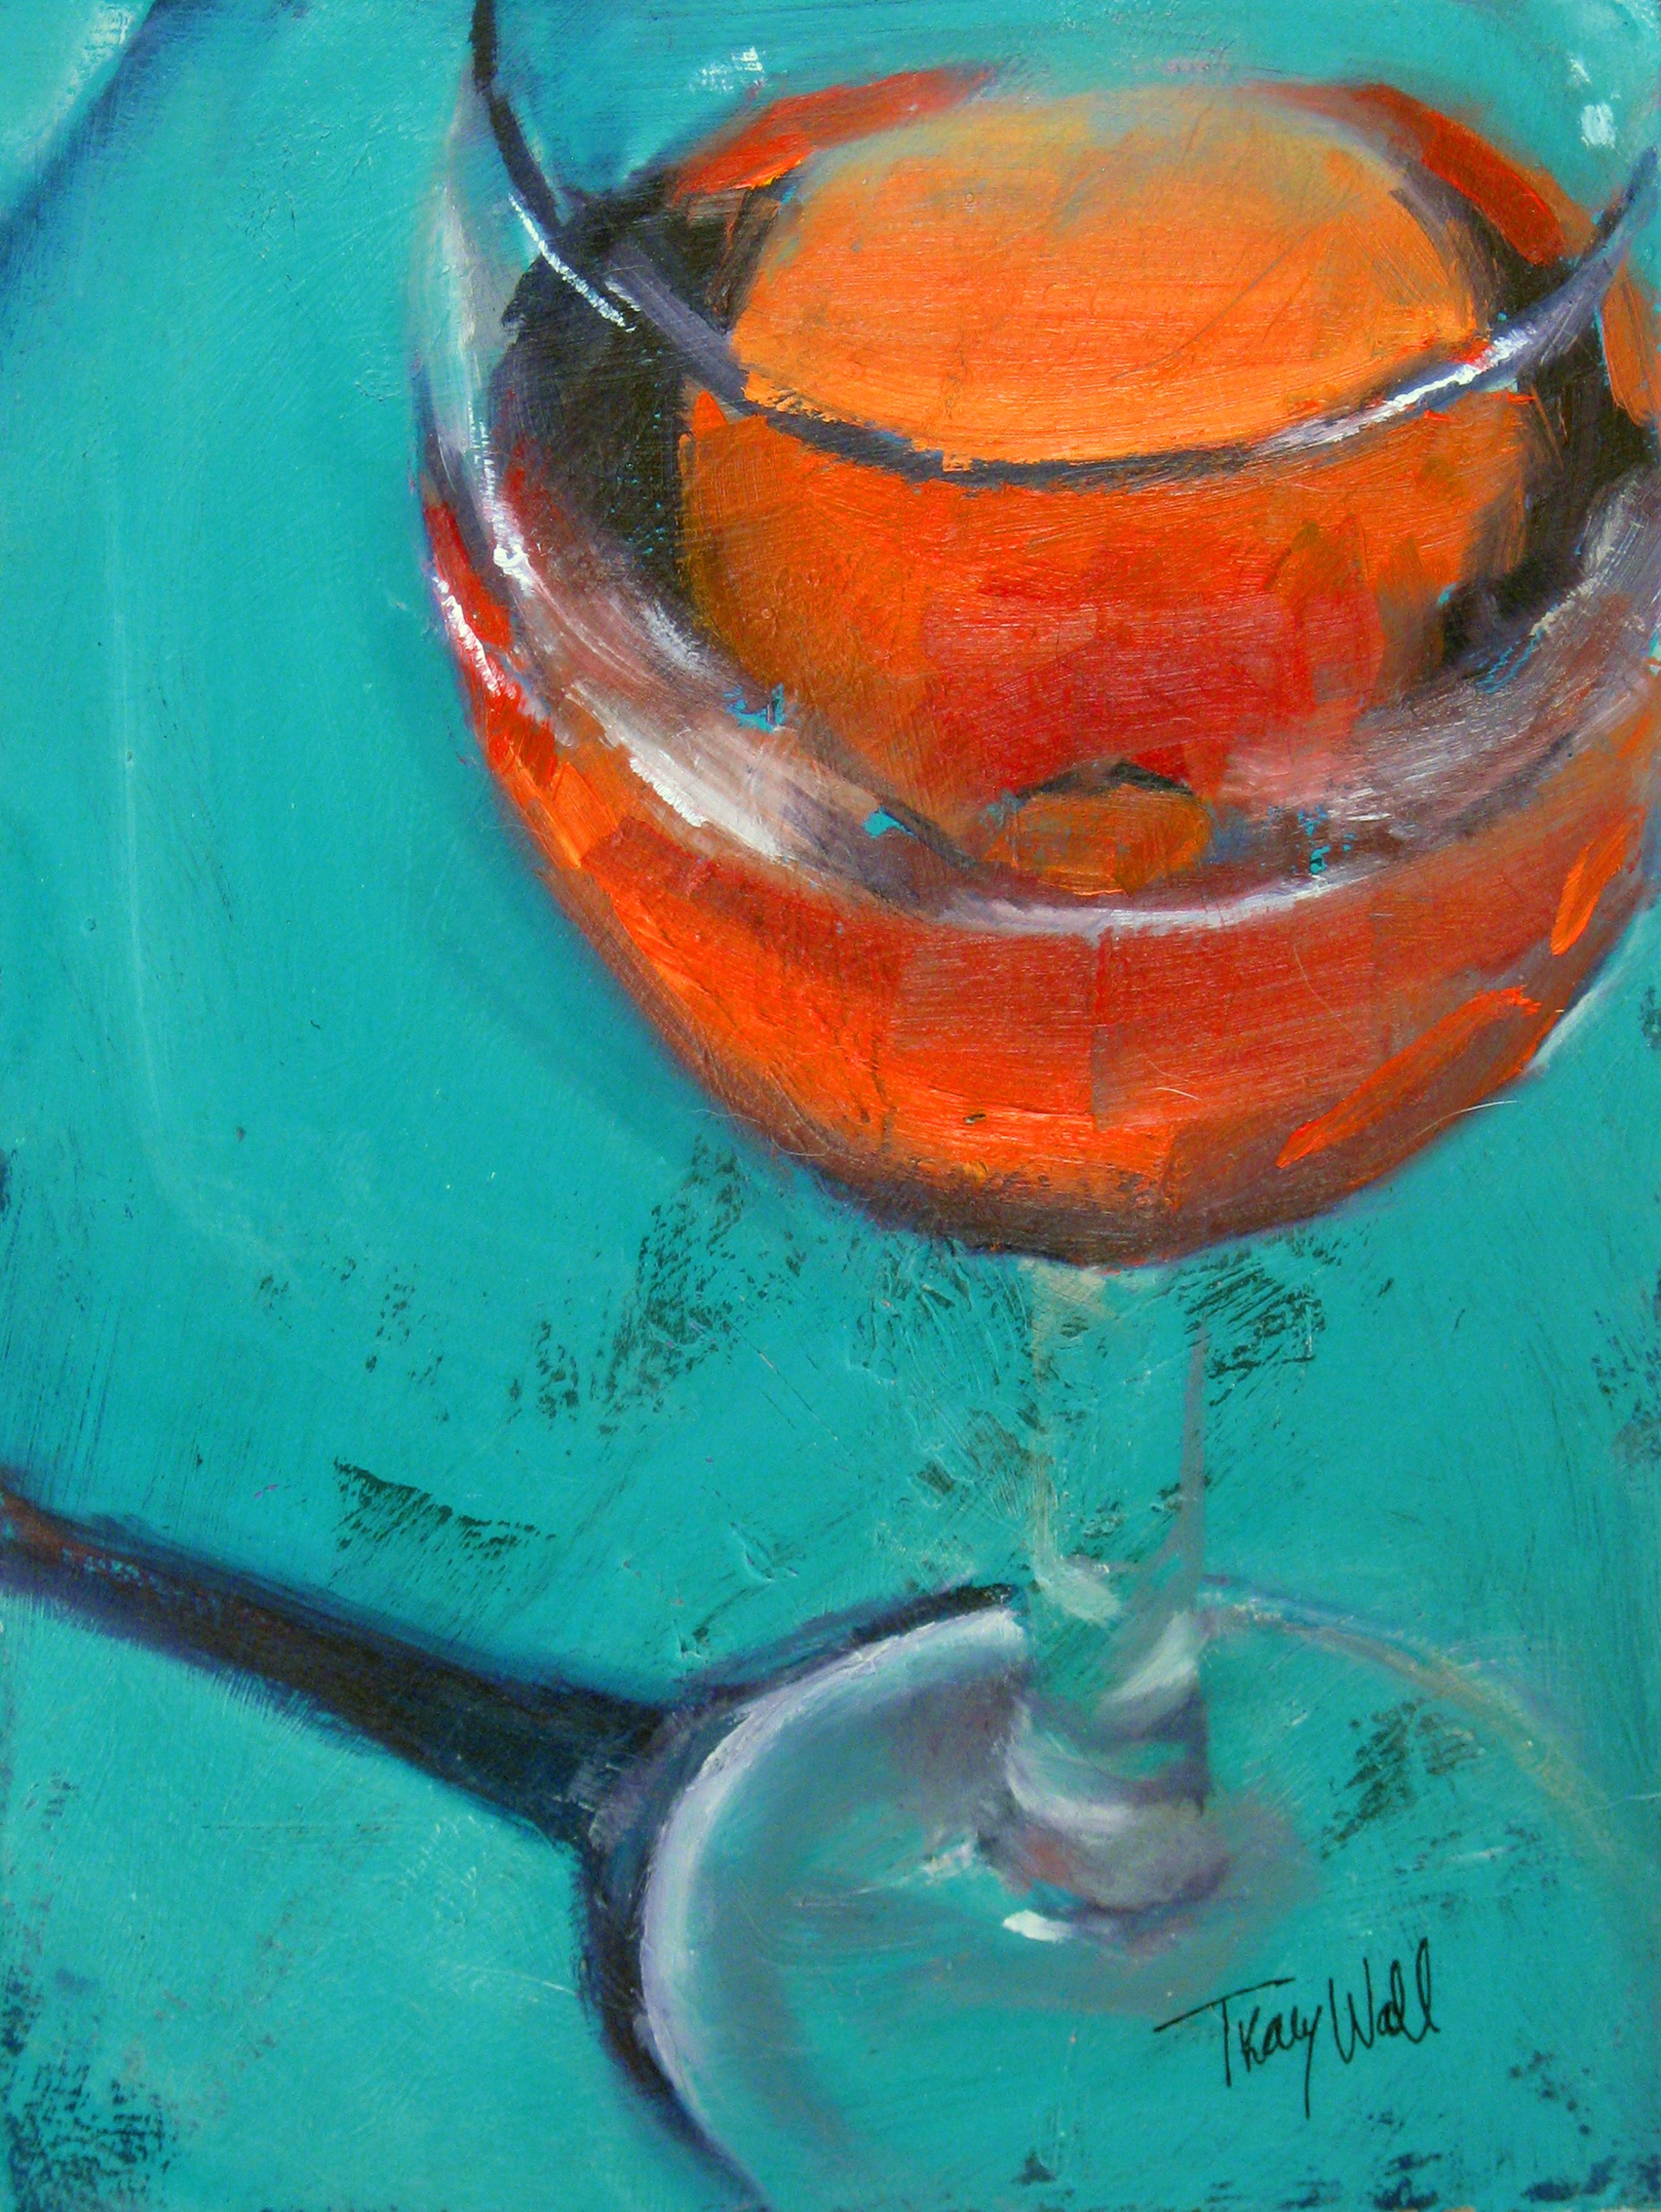 Turquoise Blush(wine study) by Tracy Wall